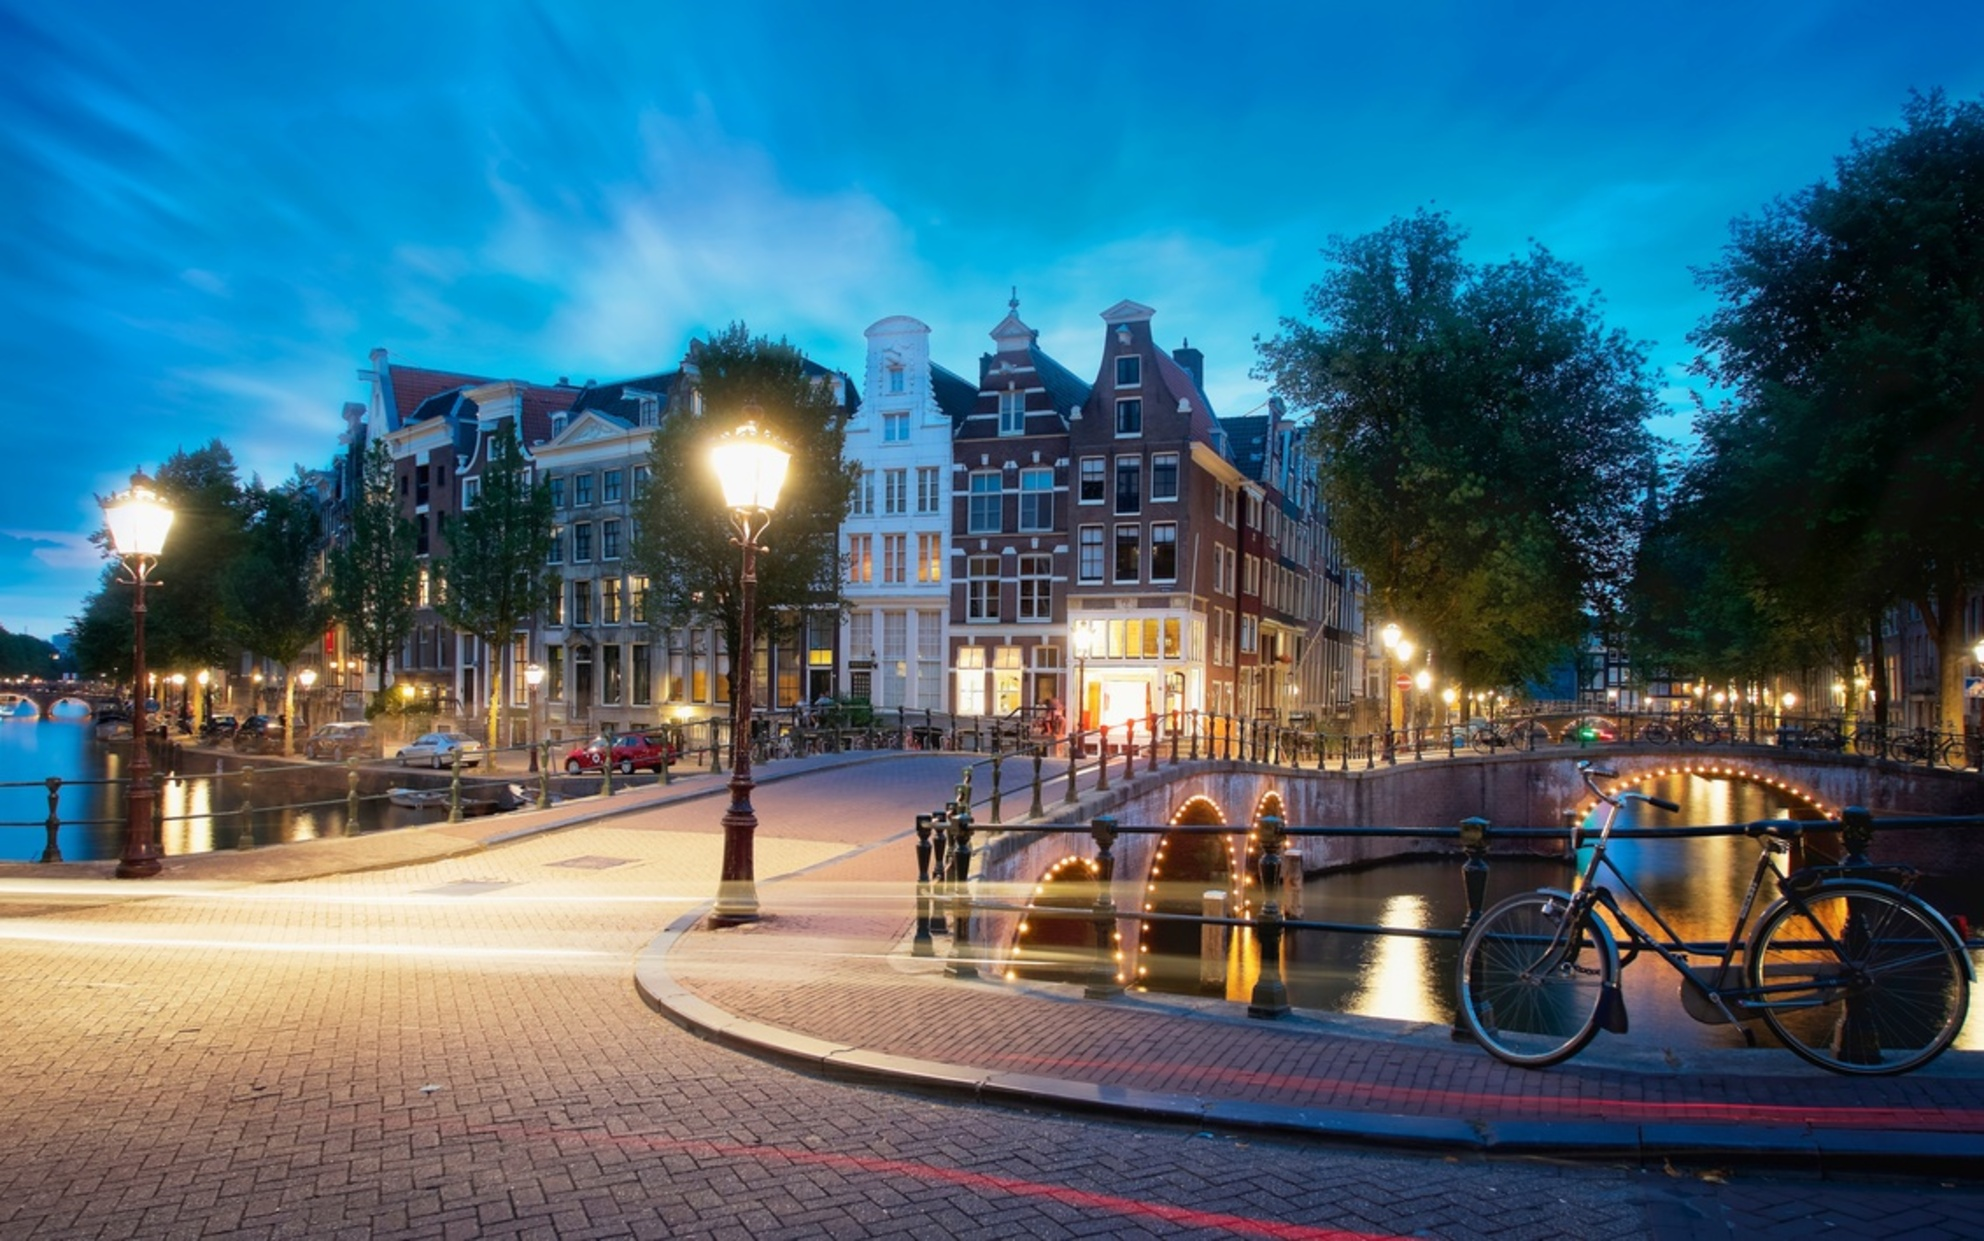 Keizersgracht Famous Cross - This time I went to Amsterdam with a colleague. I did few photos taking the opportunity of the incredible warm and nice day. For this photo I did not - foto door lcutolo op 15-08-2018 - deze foto bevat: amsterdam, bridge, water, sunset, monument, art, holland, flowers, city, reflections, sharp, world, sky, sony, tulip, architecture, colours, canal, ams, vignette, europe, tlp, tourism, cityscape, city life, light trails, city lights, ngc, sony a7ii, world trekker, luca cutolo, city centre, onone raw, zeiss lens, intense colors, canal boat - Deze foto mag gebruikt worden in een Zoom.nl publicatie